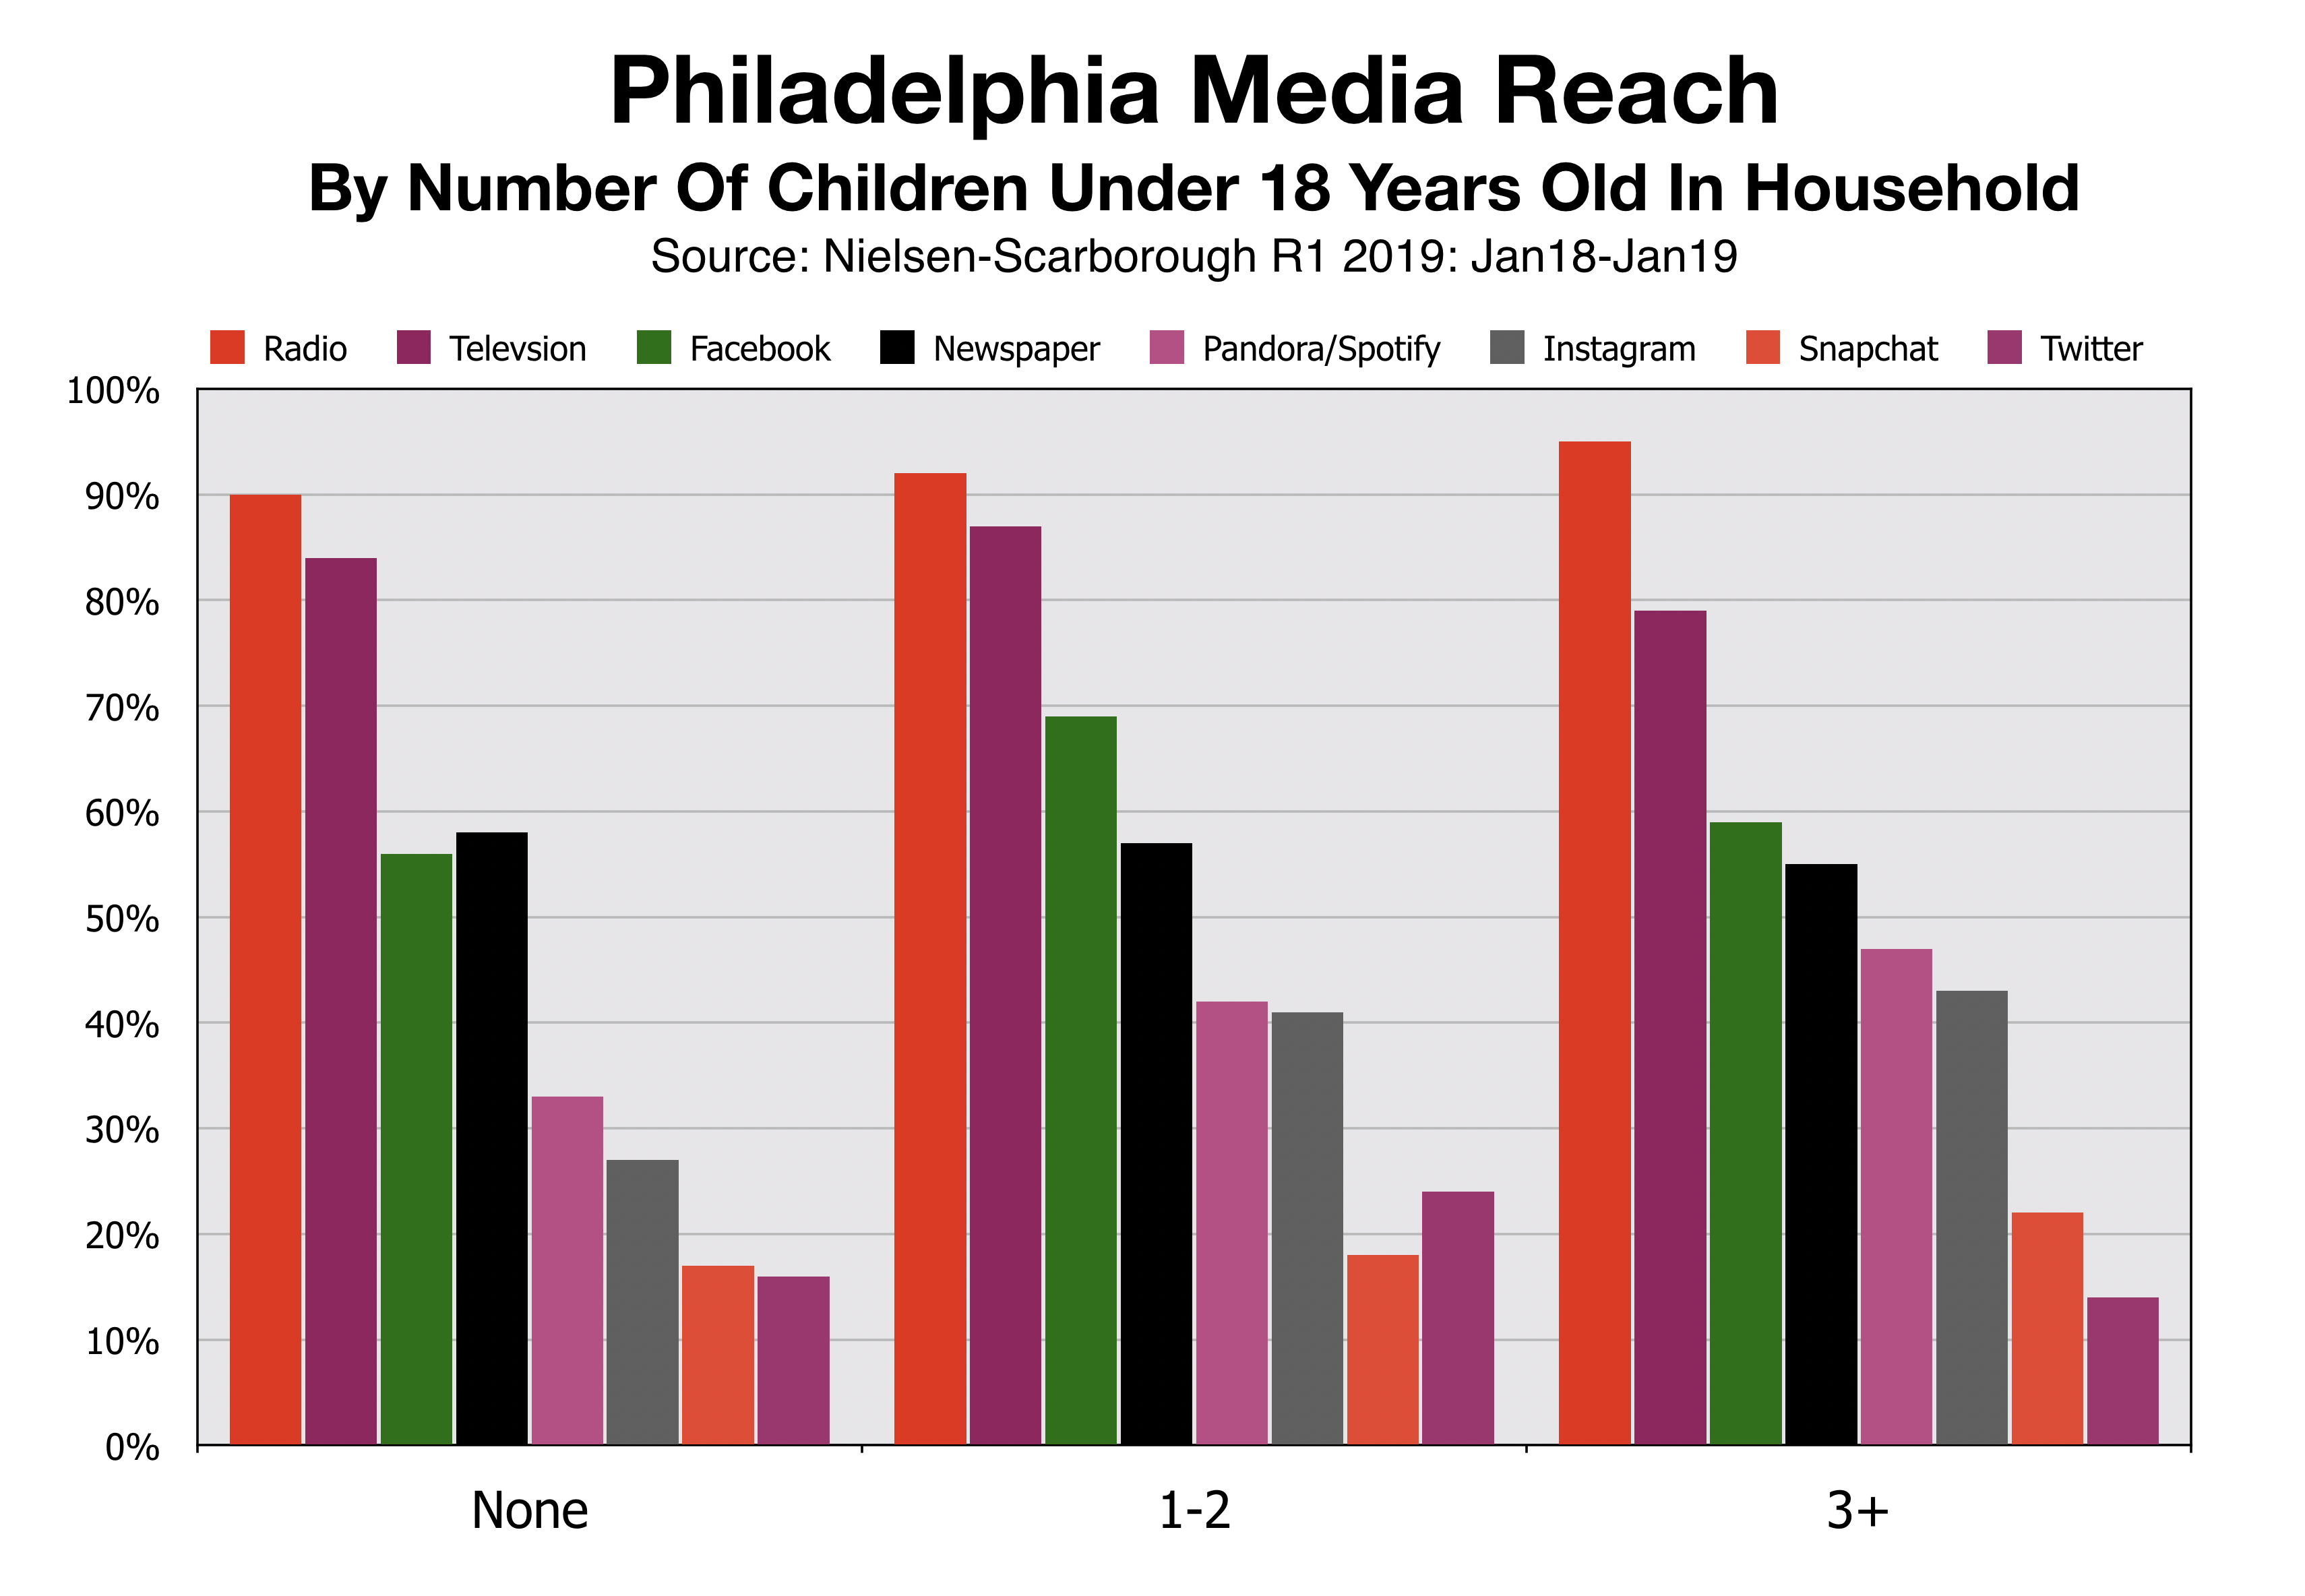 Advertise In Philadelphia Media Reach By Number of Children at Home